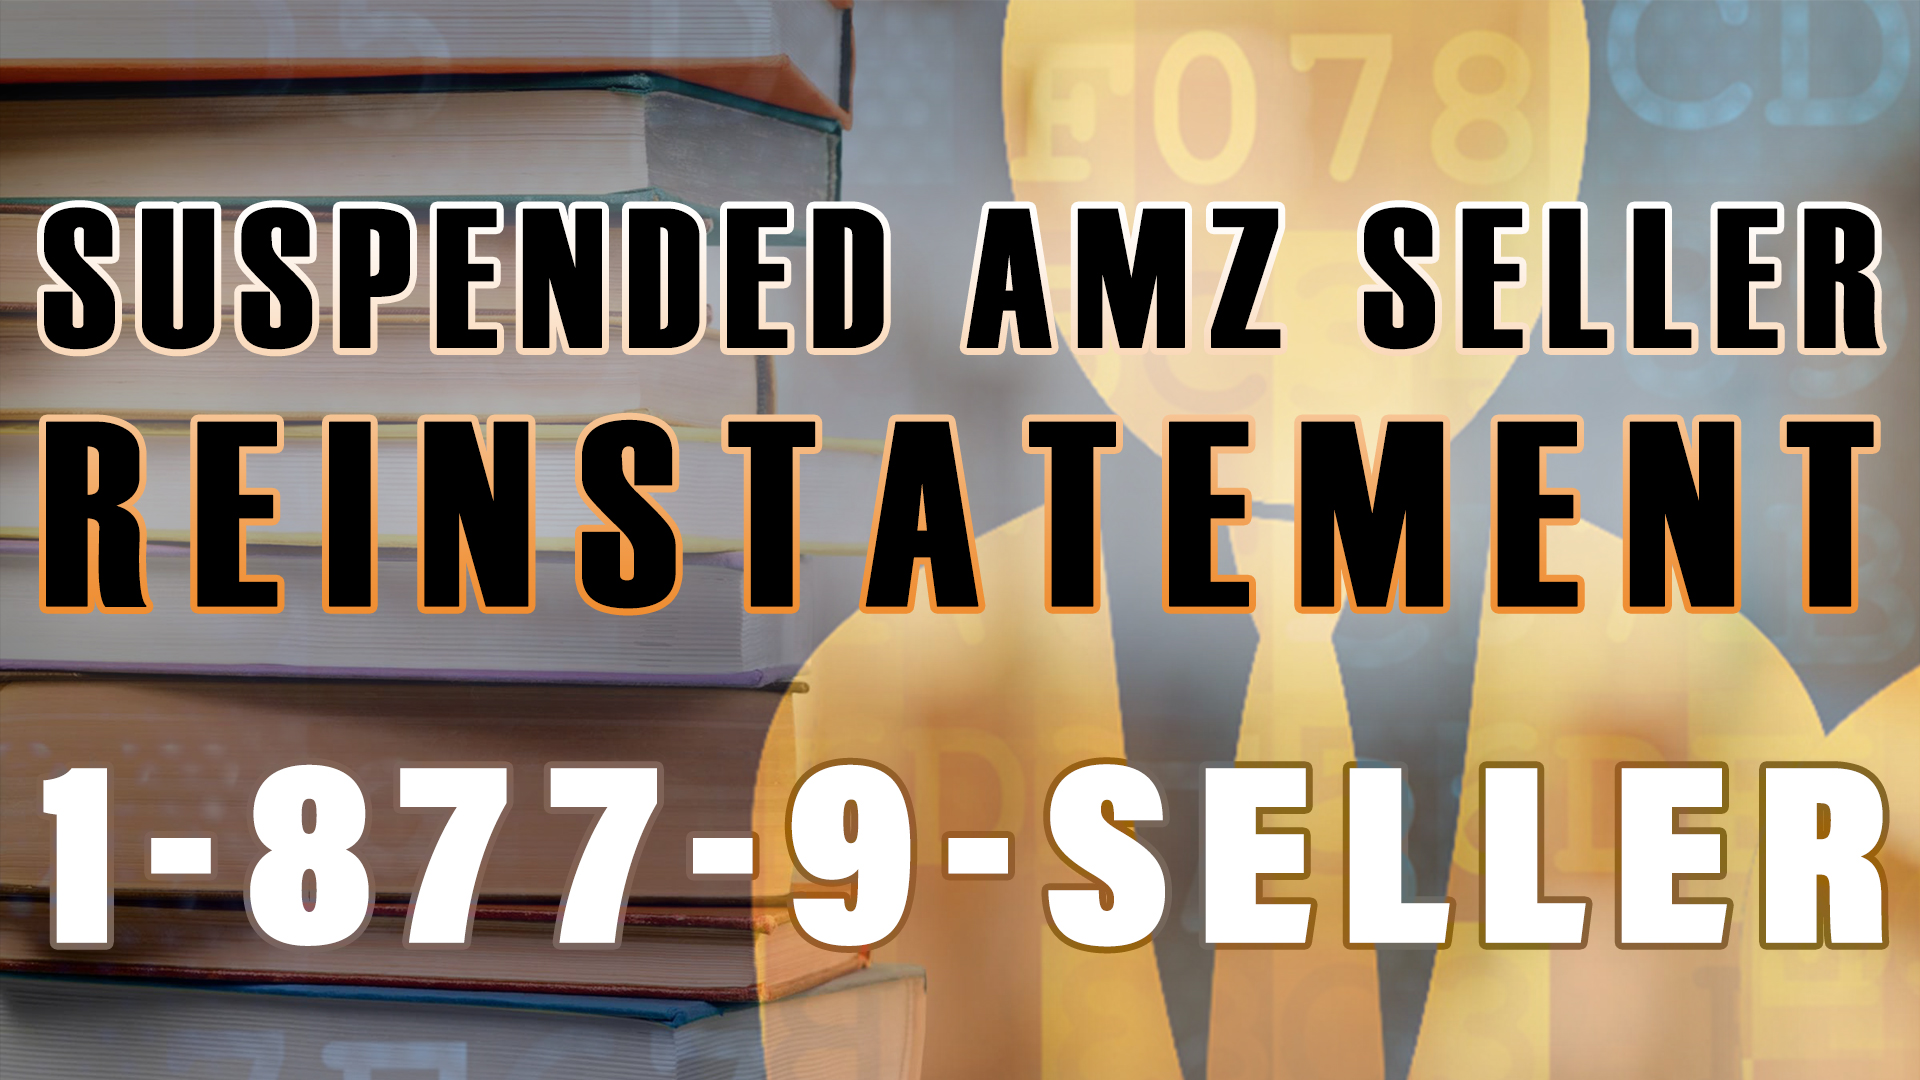 troubled listings - suspended Amz seller reinstatements